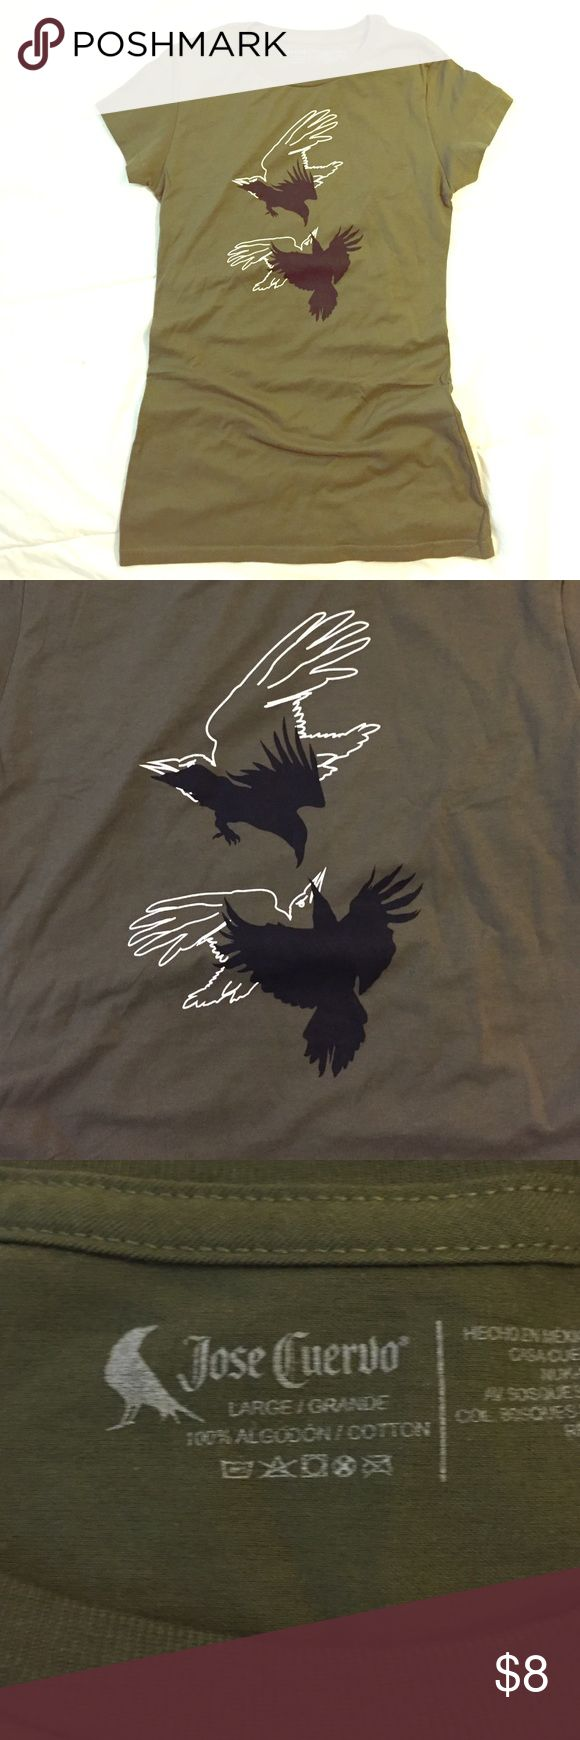 Jose Cuervo bird t-shirt Jose Cuervo graphic black bird fitted tee. 100% cotton. Never worn. jose cuervo Tops Tees - Short Sleeve